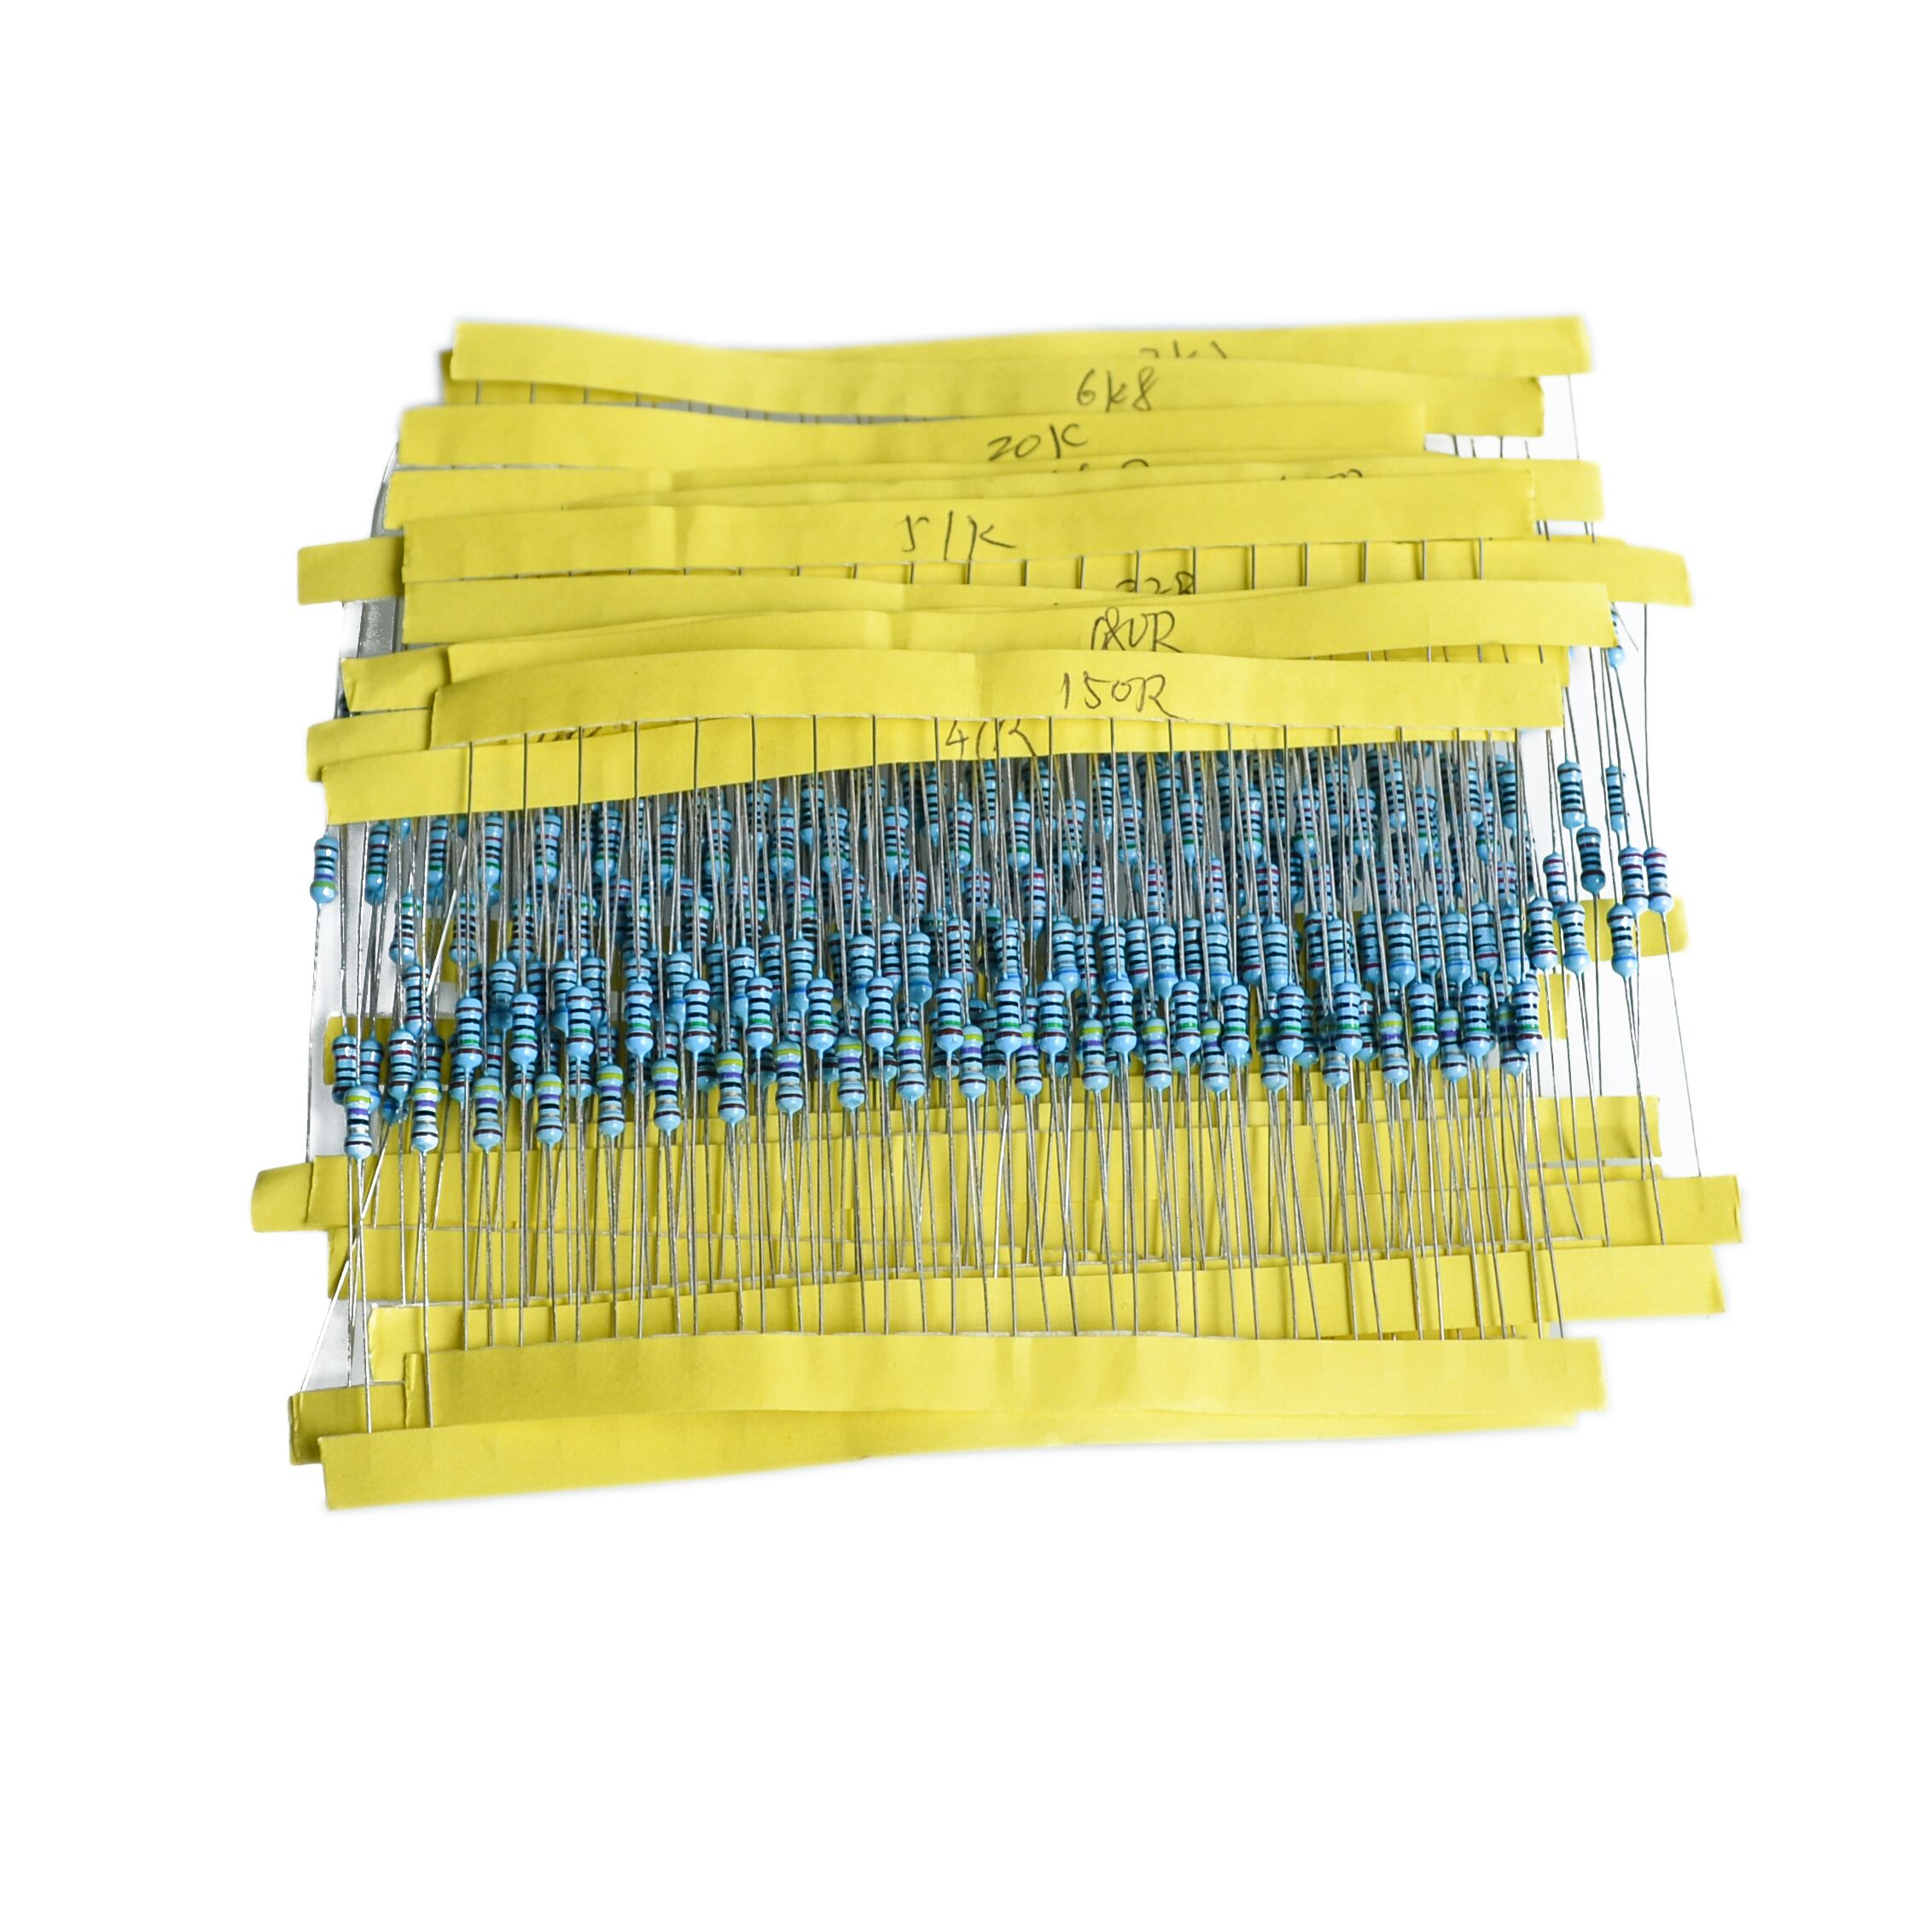 New 600pcs 1/4W 30 kinds resistance metal film resistors 1% accuracy,precision metal res ...